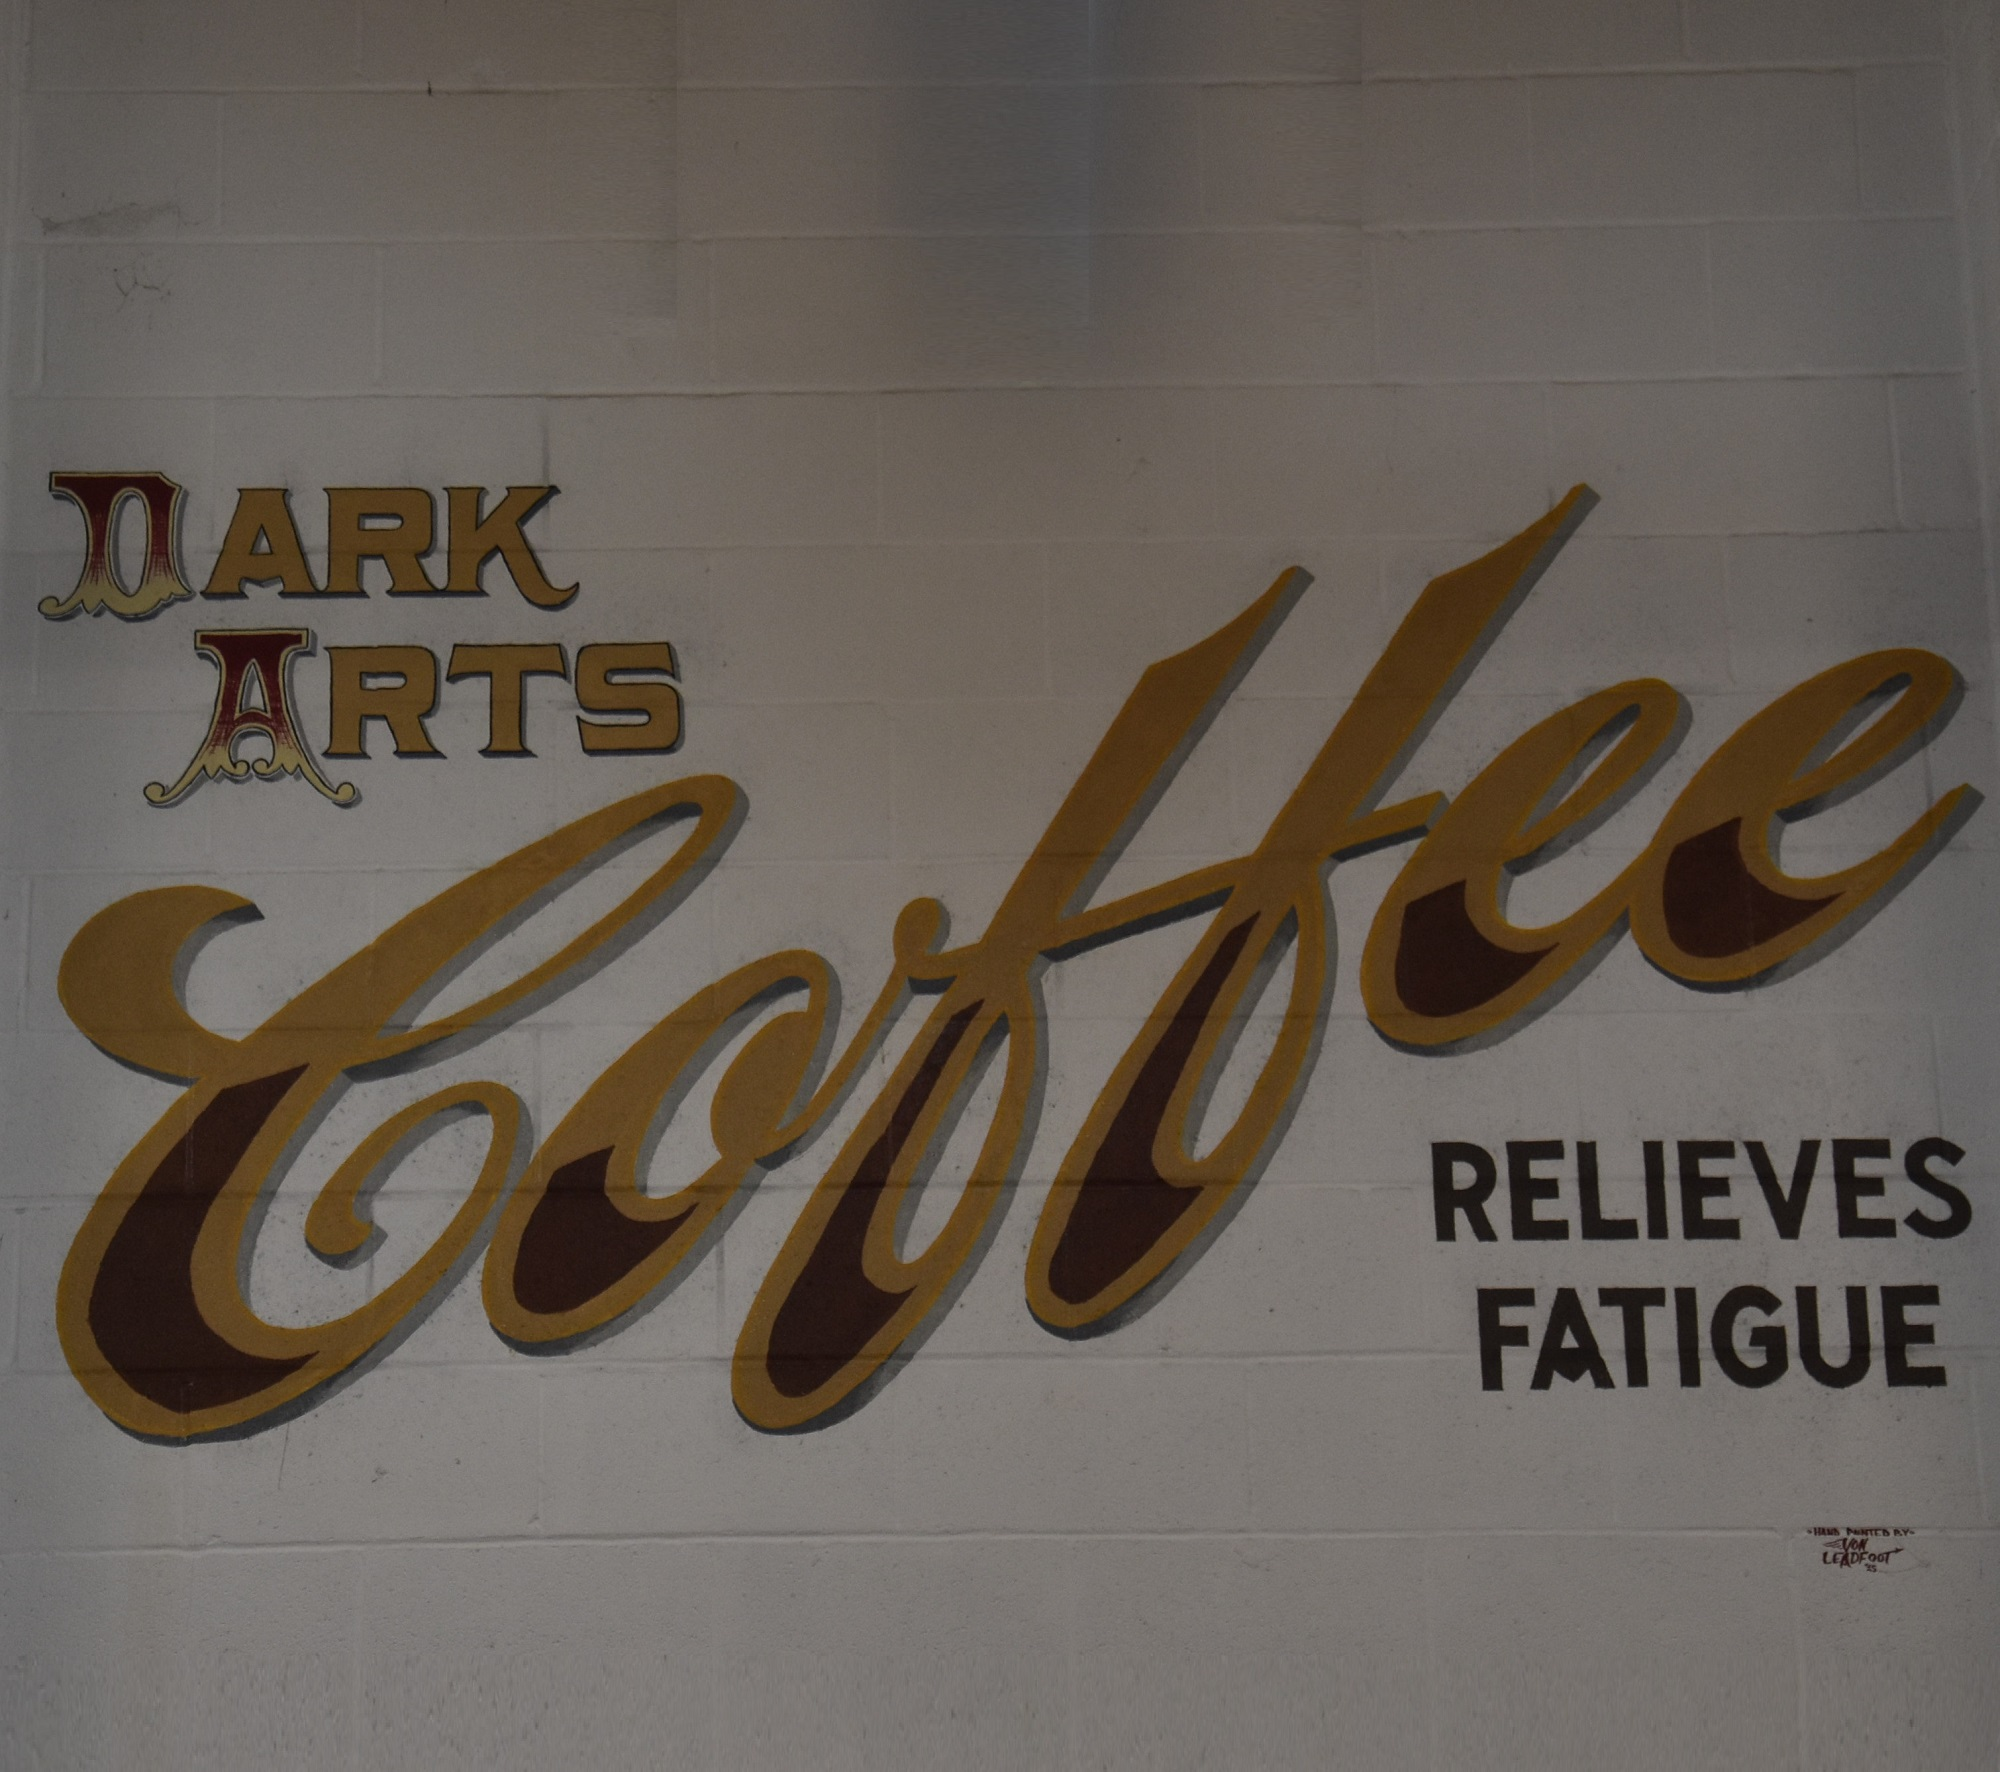 The logo from the back of the wall of I Will Kill Again, proudly proclaiming 'Dark Arts Coffee Relieves Fatigue'.